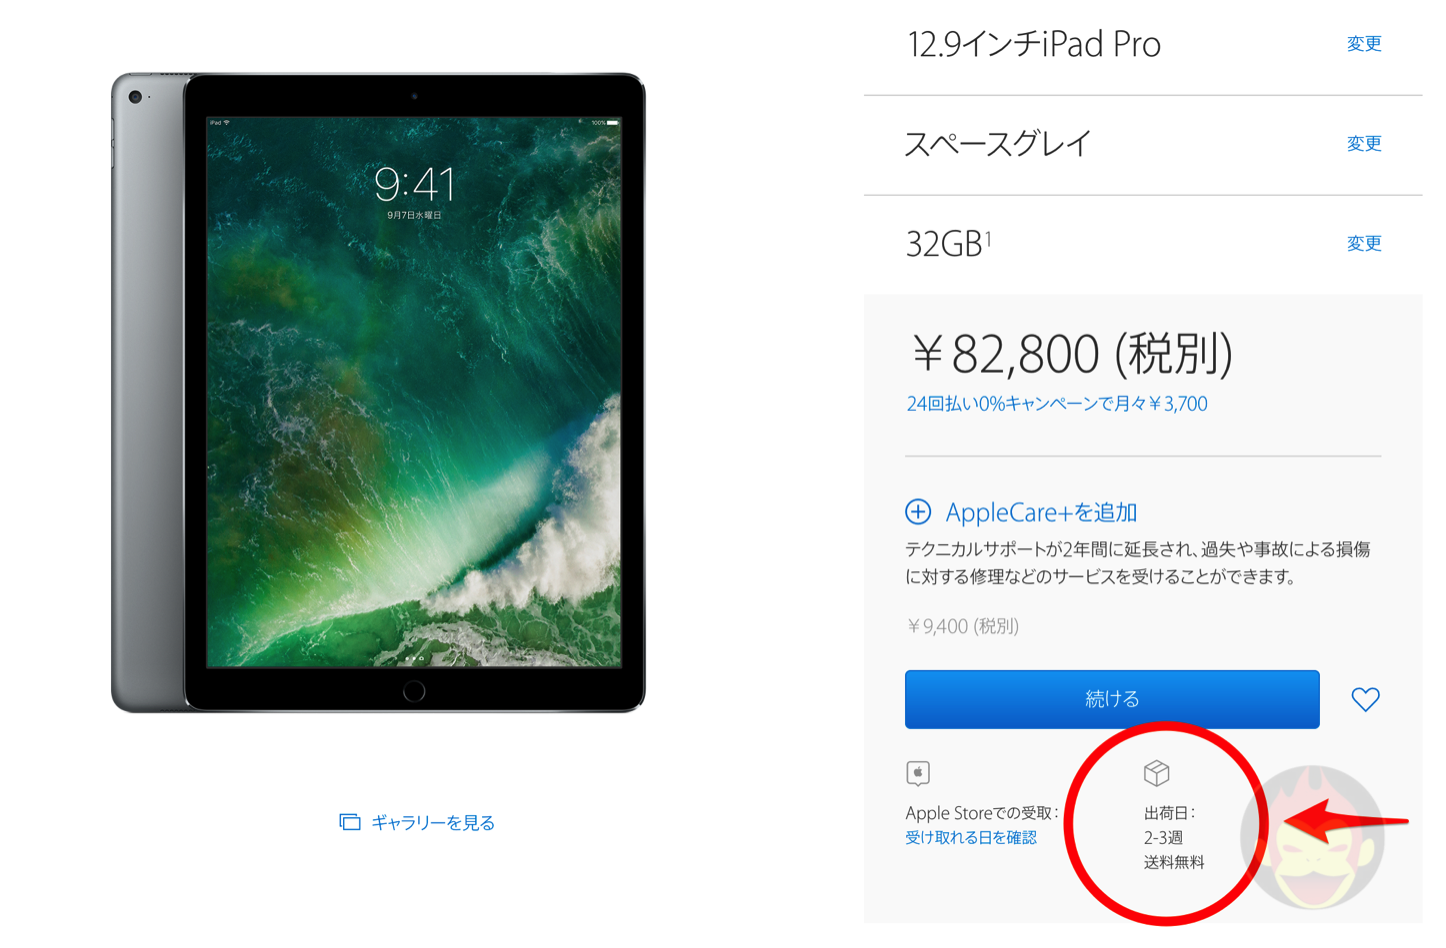 Ipadpro 13 inch getting late 01